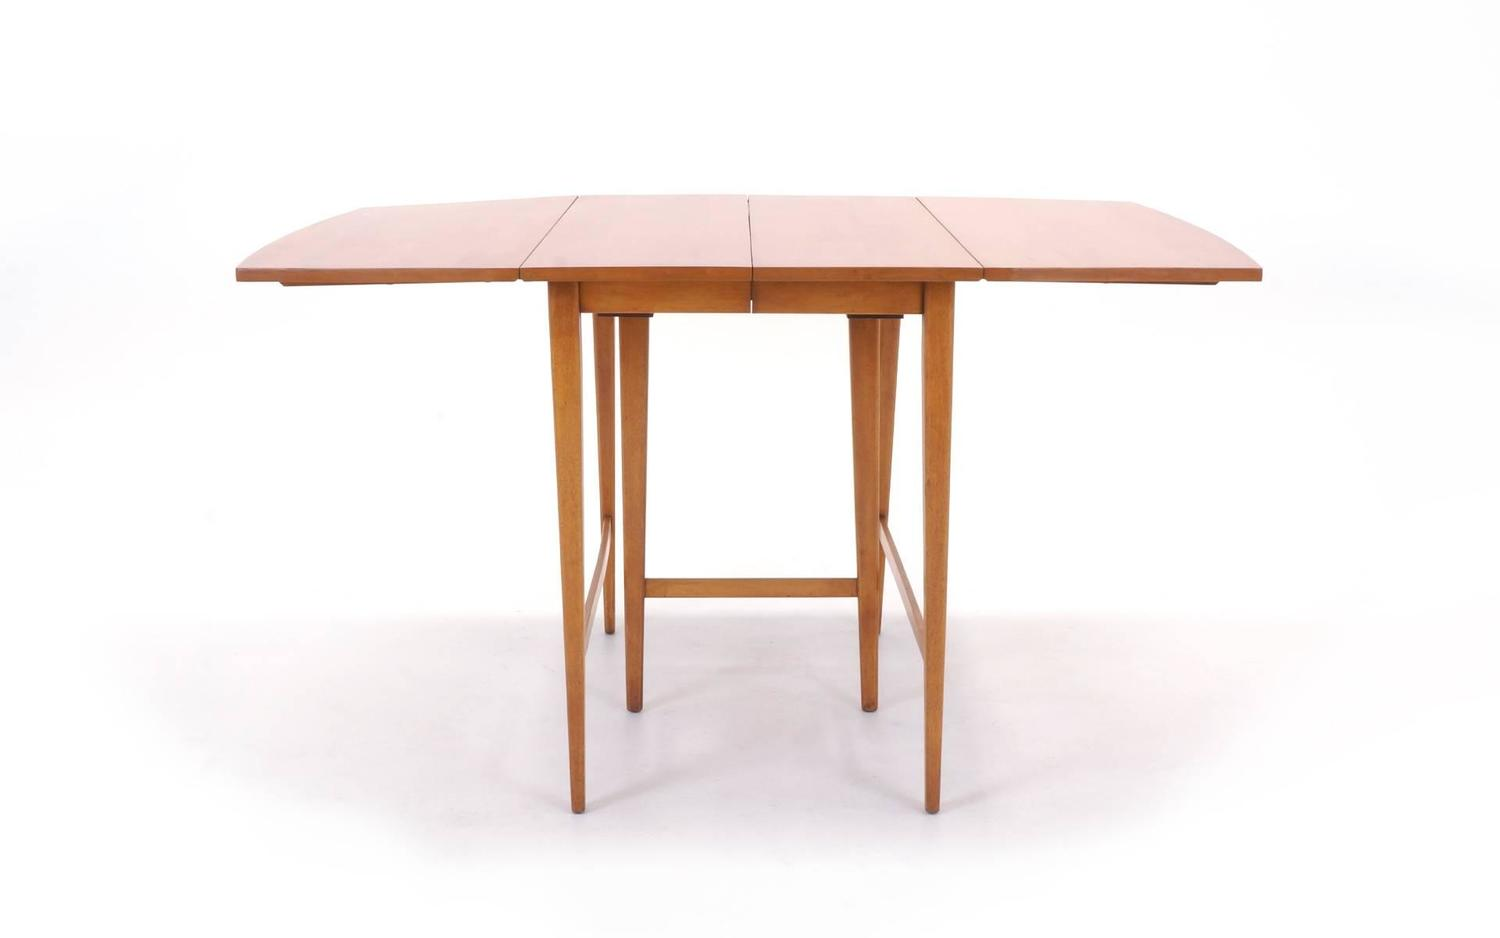 Paul mccobb expandable drop leaf dining table for sale at for Dining room table replacement leaf